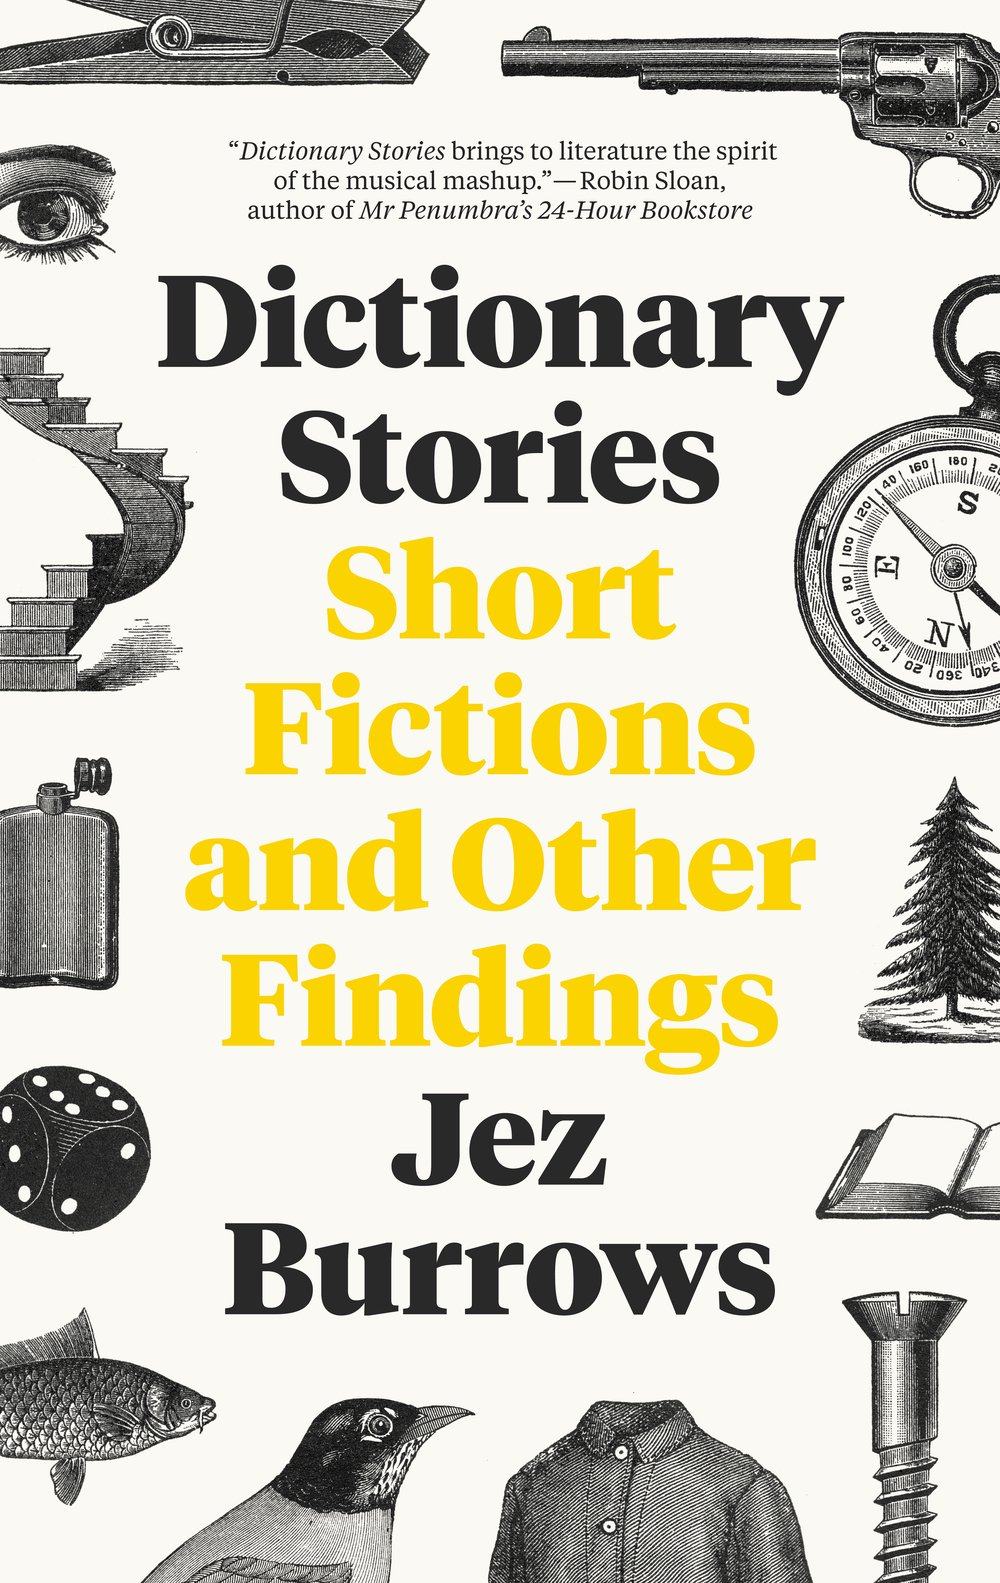 DictionaryStories_Cover_Sept2017 copy 2.jpg